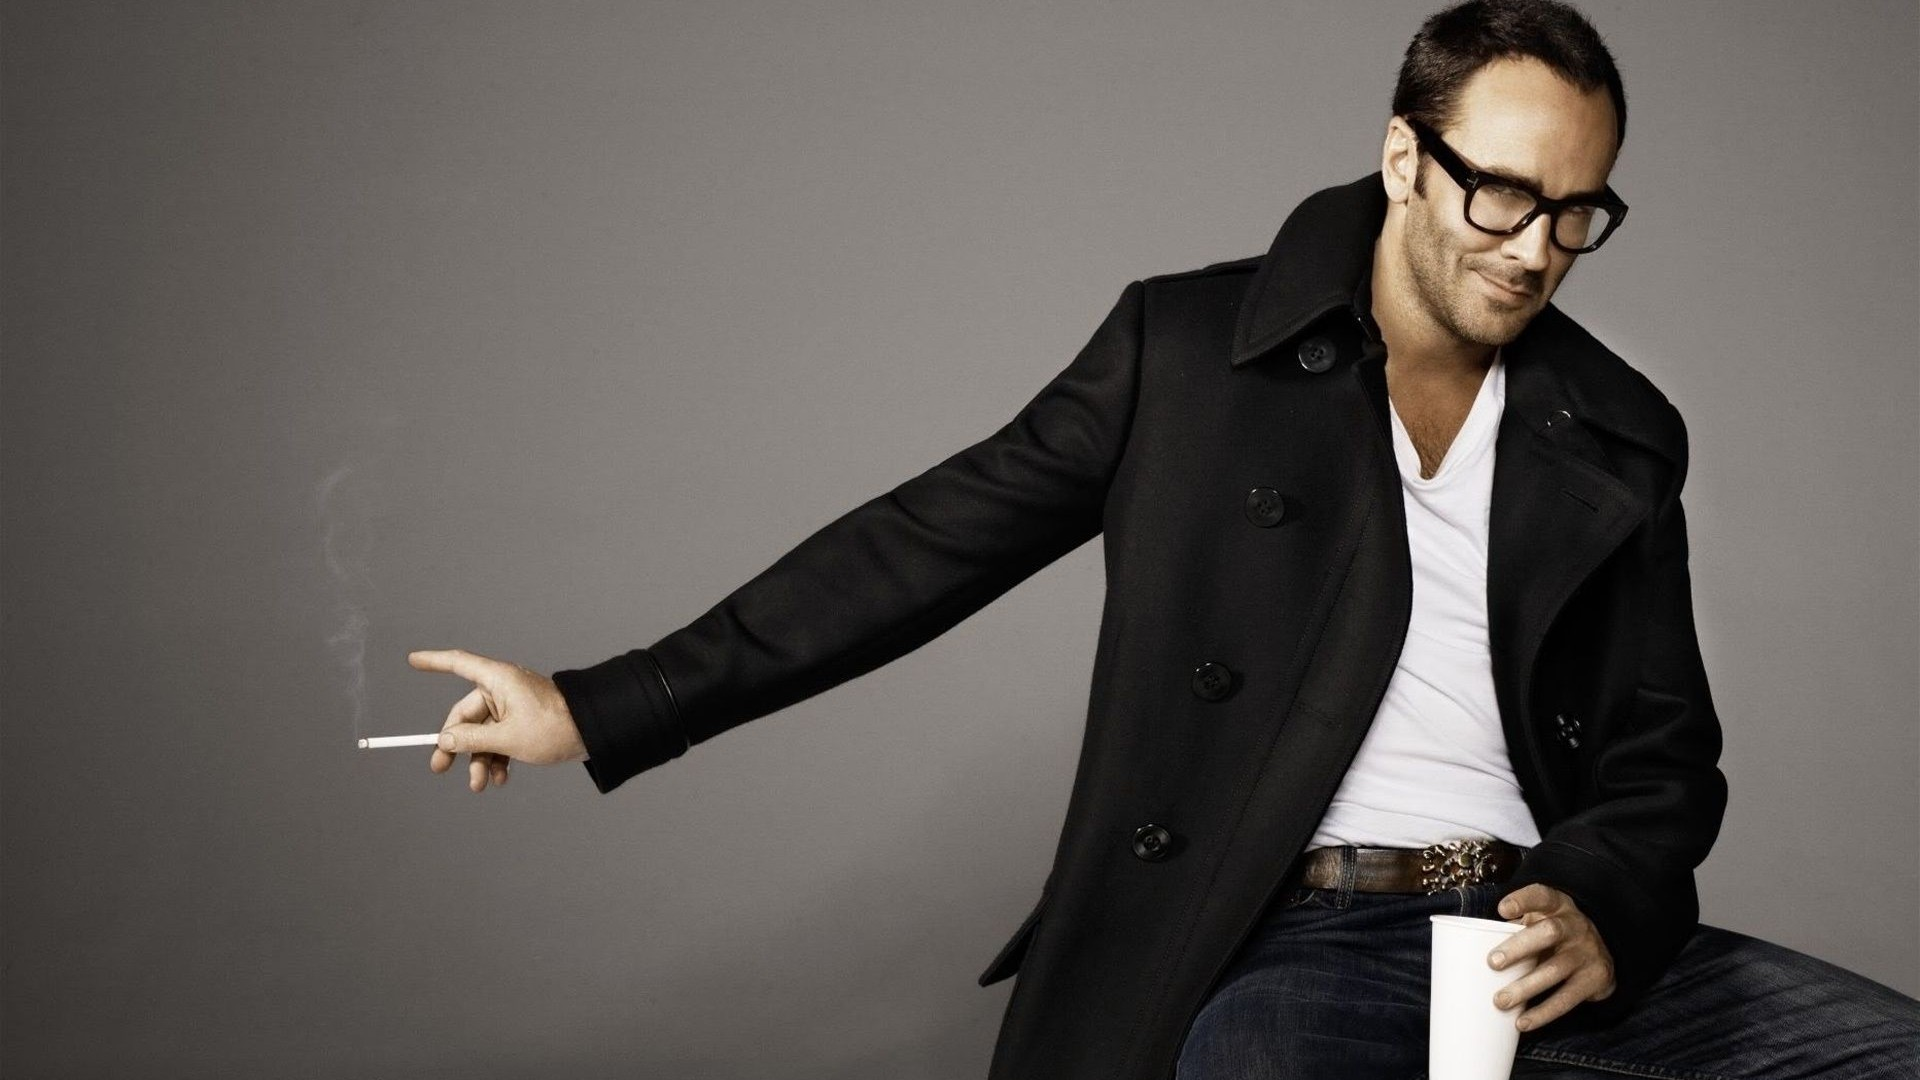 Best 49 Tom Ford Wallpaper on HipWallpaper Tom and Jerry 1920x1080